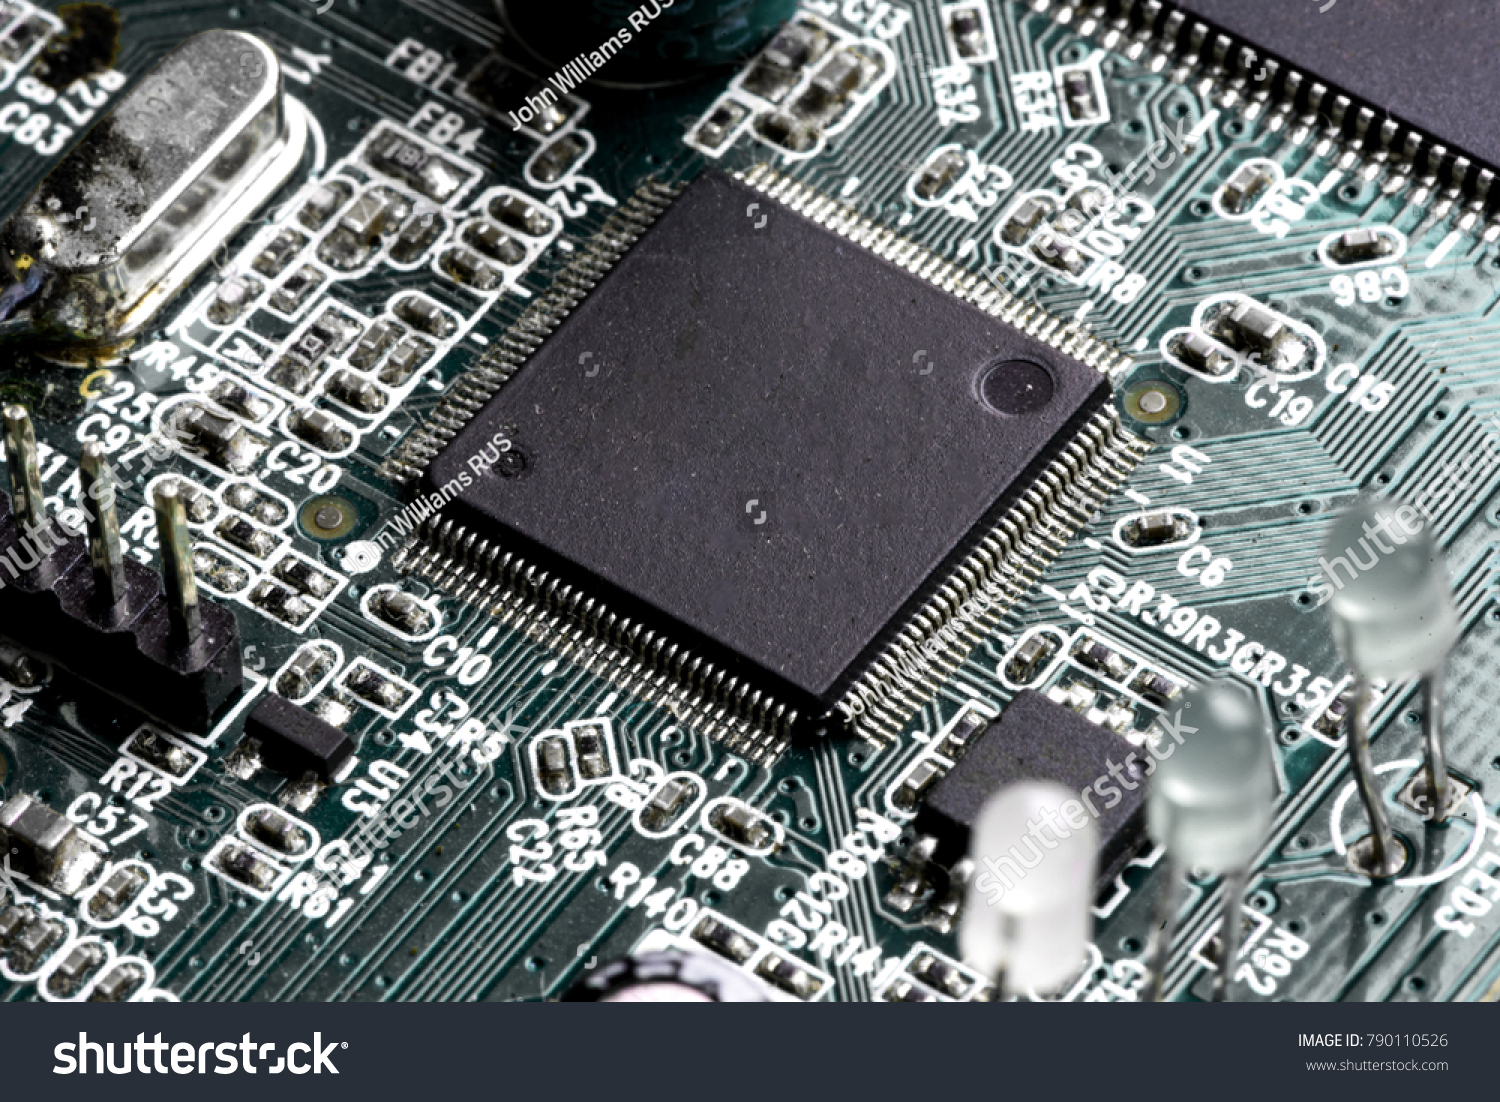 Printed Circuit Board Transistors Wiring Diagram Electricity Simple Transistor As An Amplifier Electronic Pcb Macro Stock Photo Royalty Free Rh Shutterstock Com Capacitor